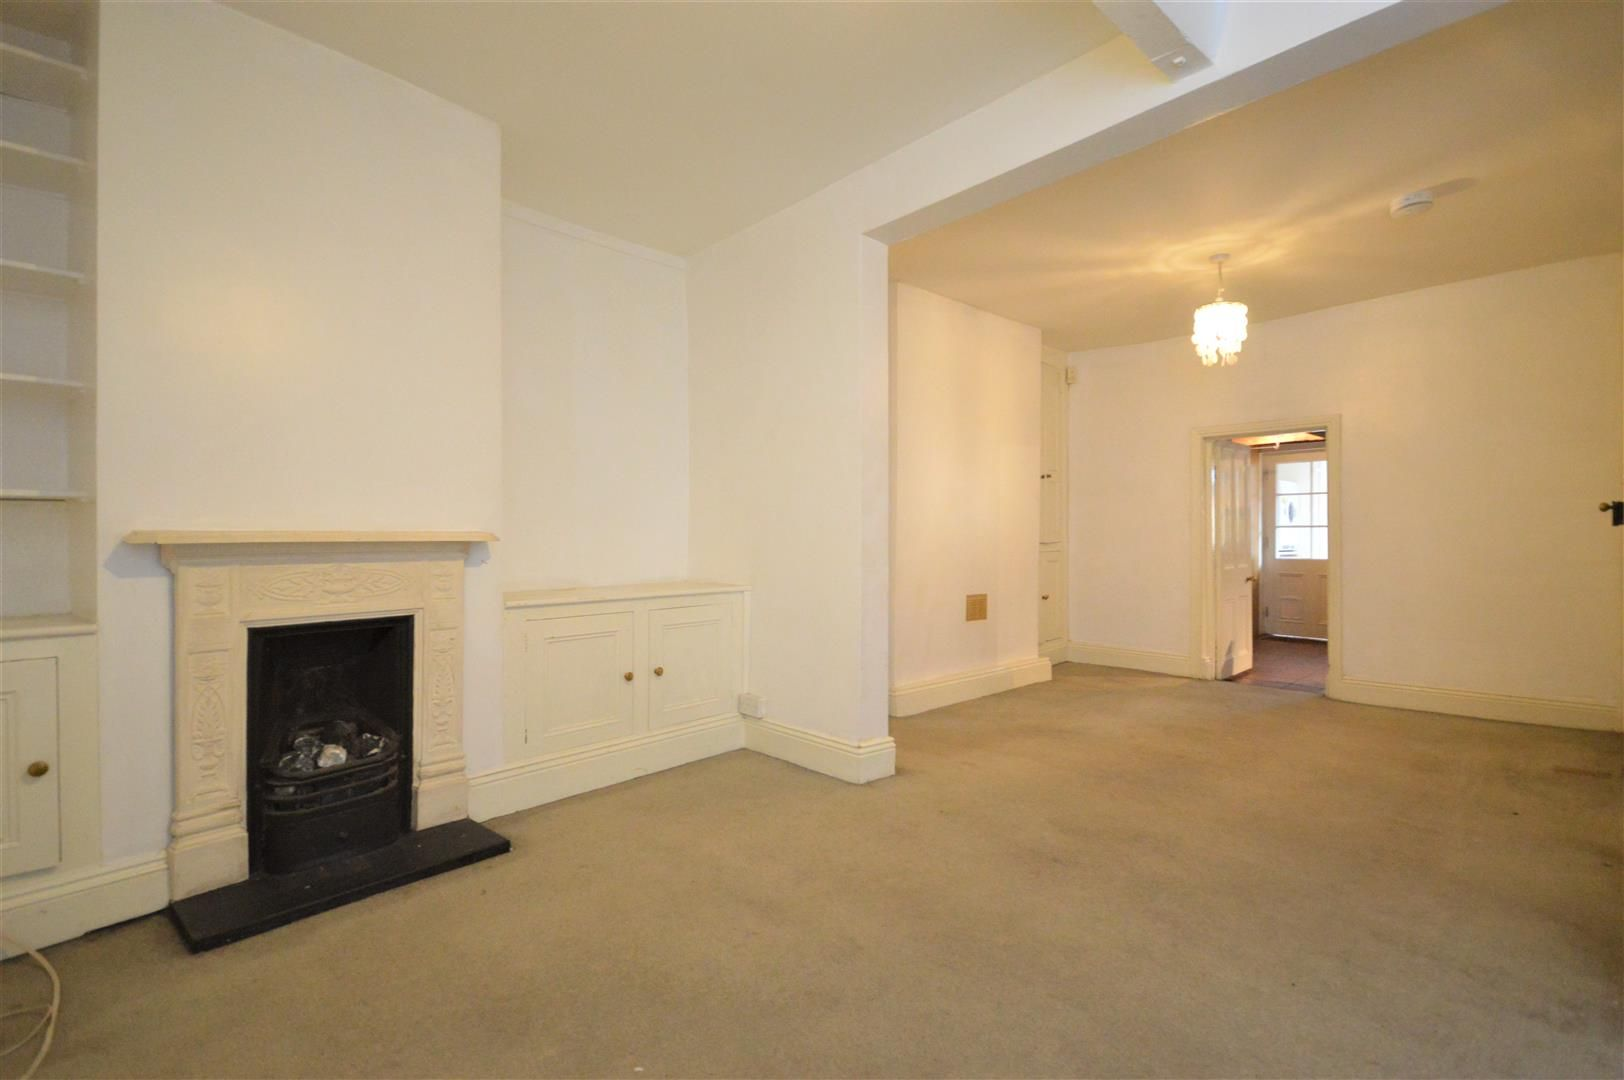 4 bed terraced for sale in Leominster 4